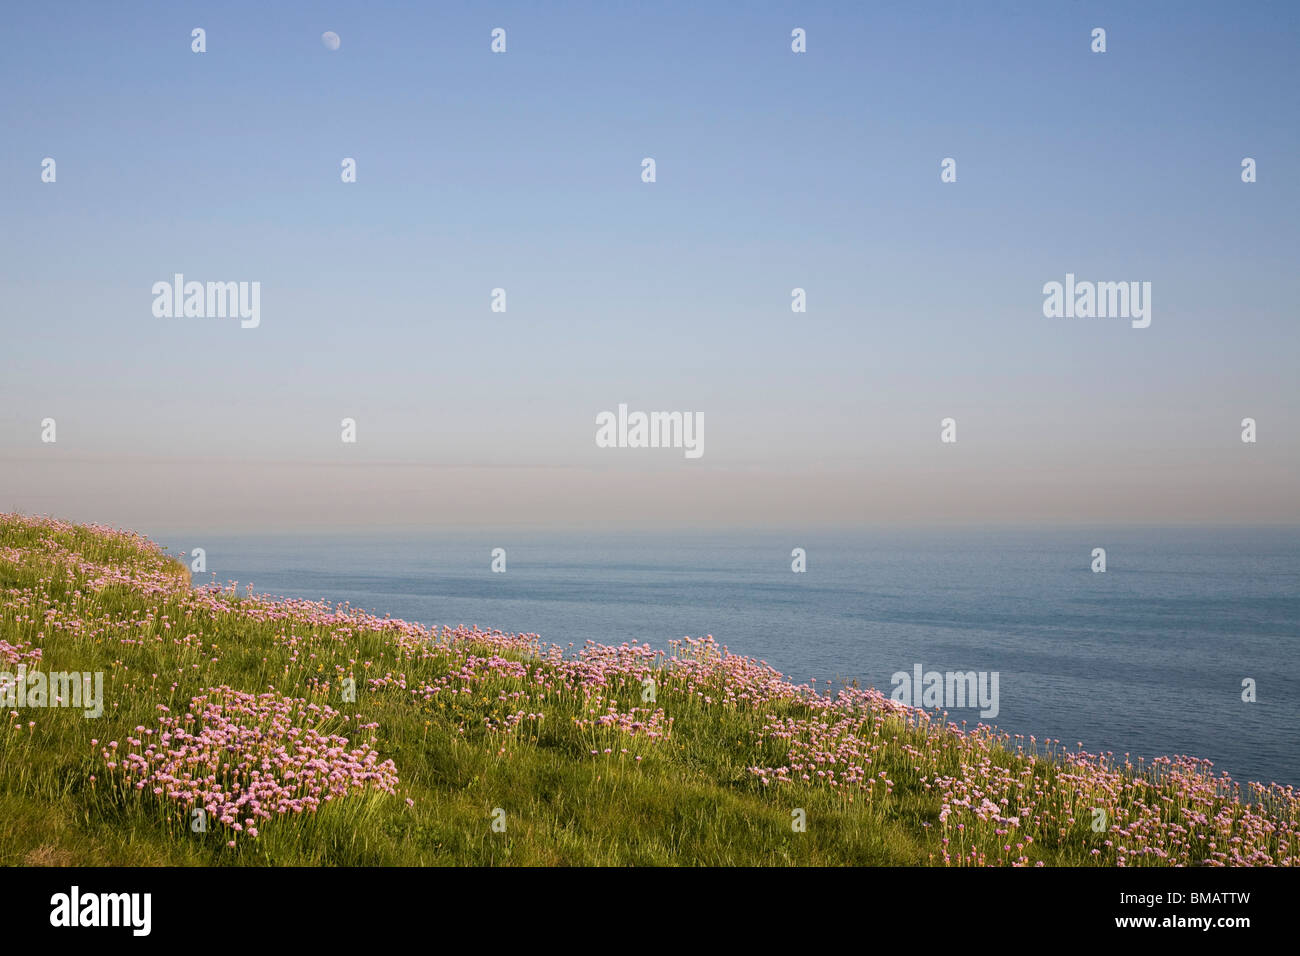 The English Channel off the Sussex Coast. The moon can be see in the East as the sun begins to set. - Stock Image